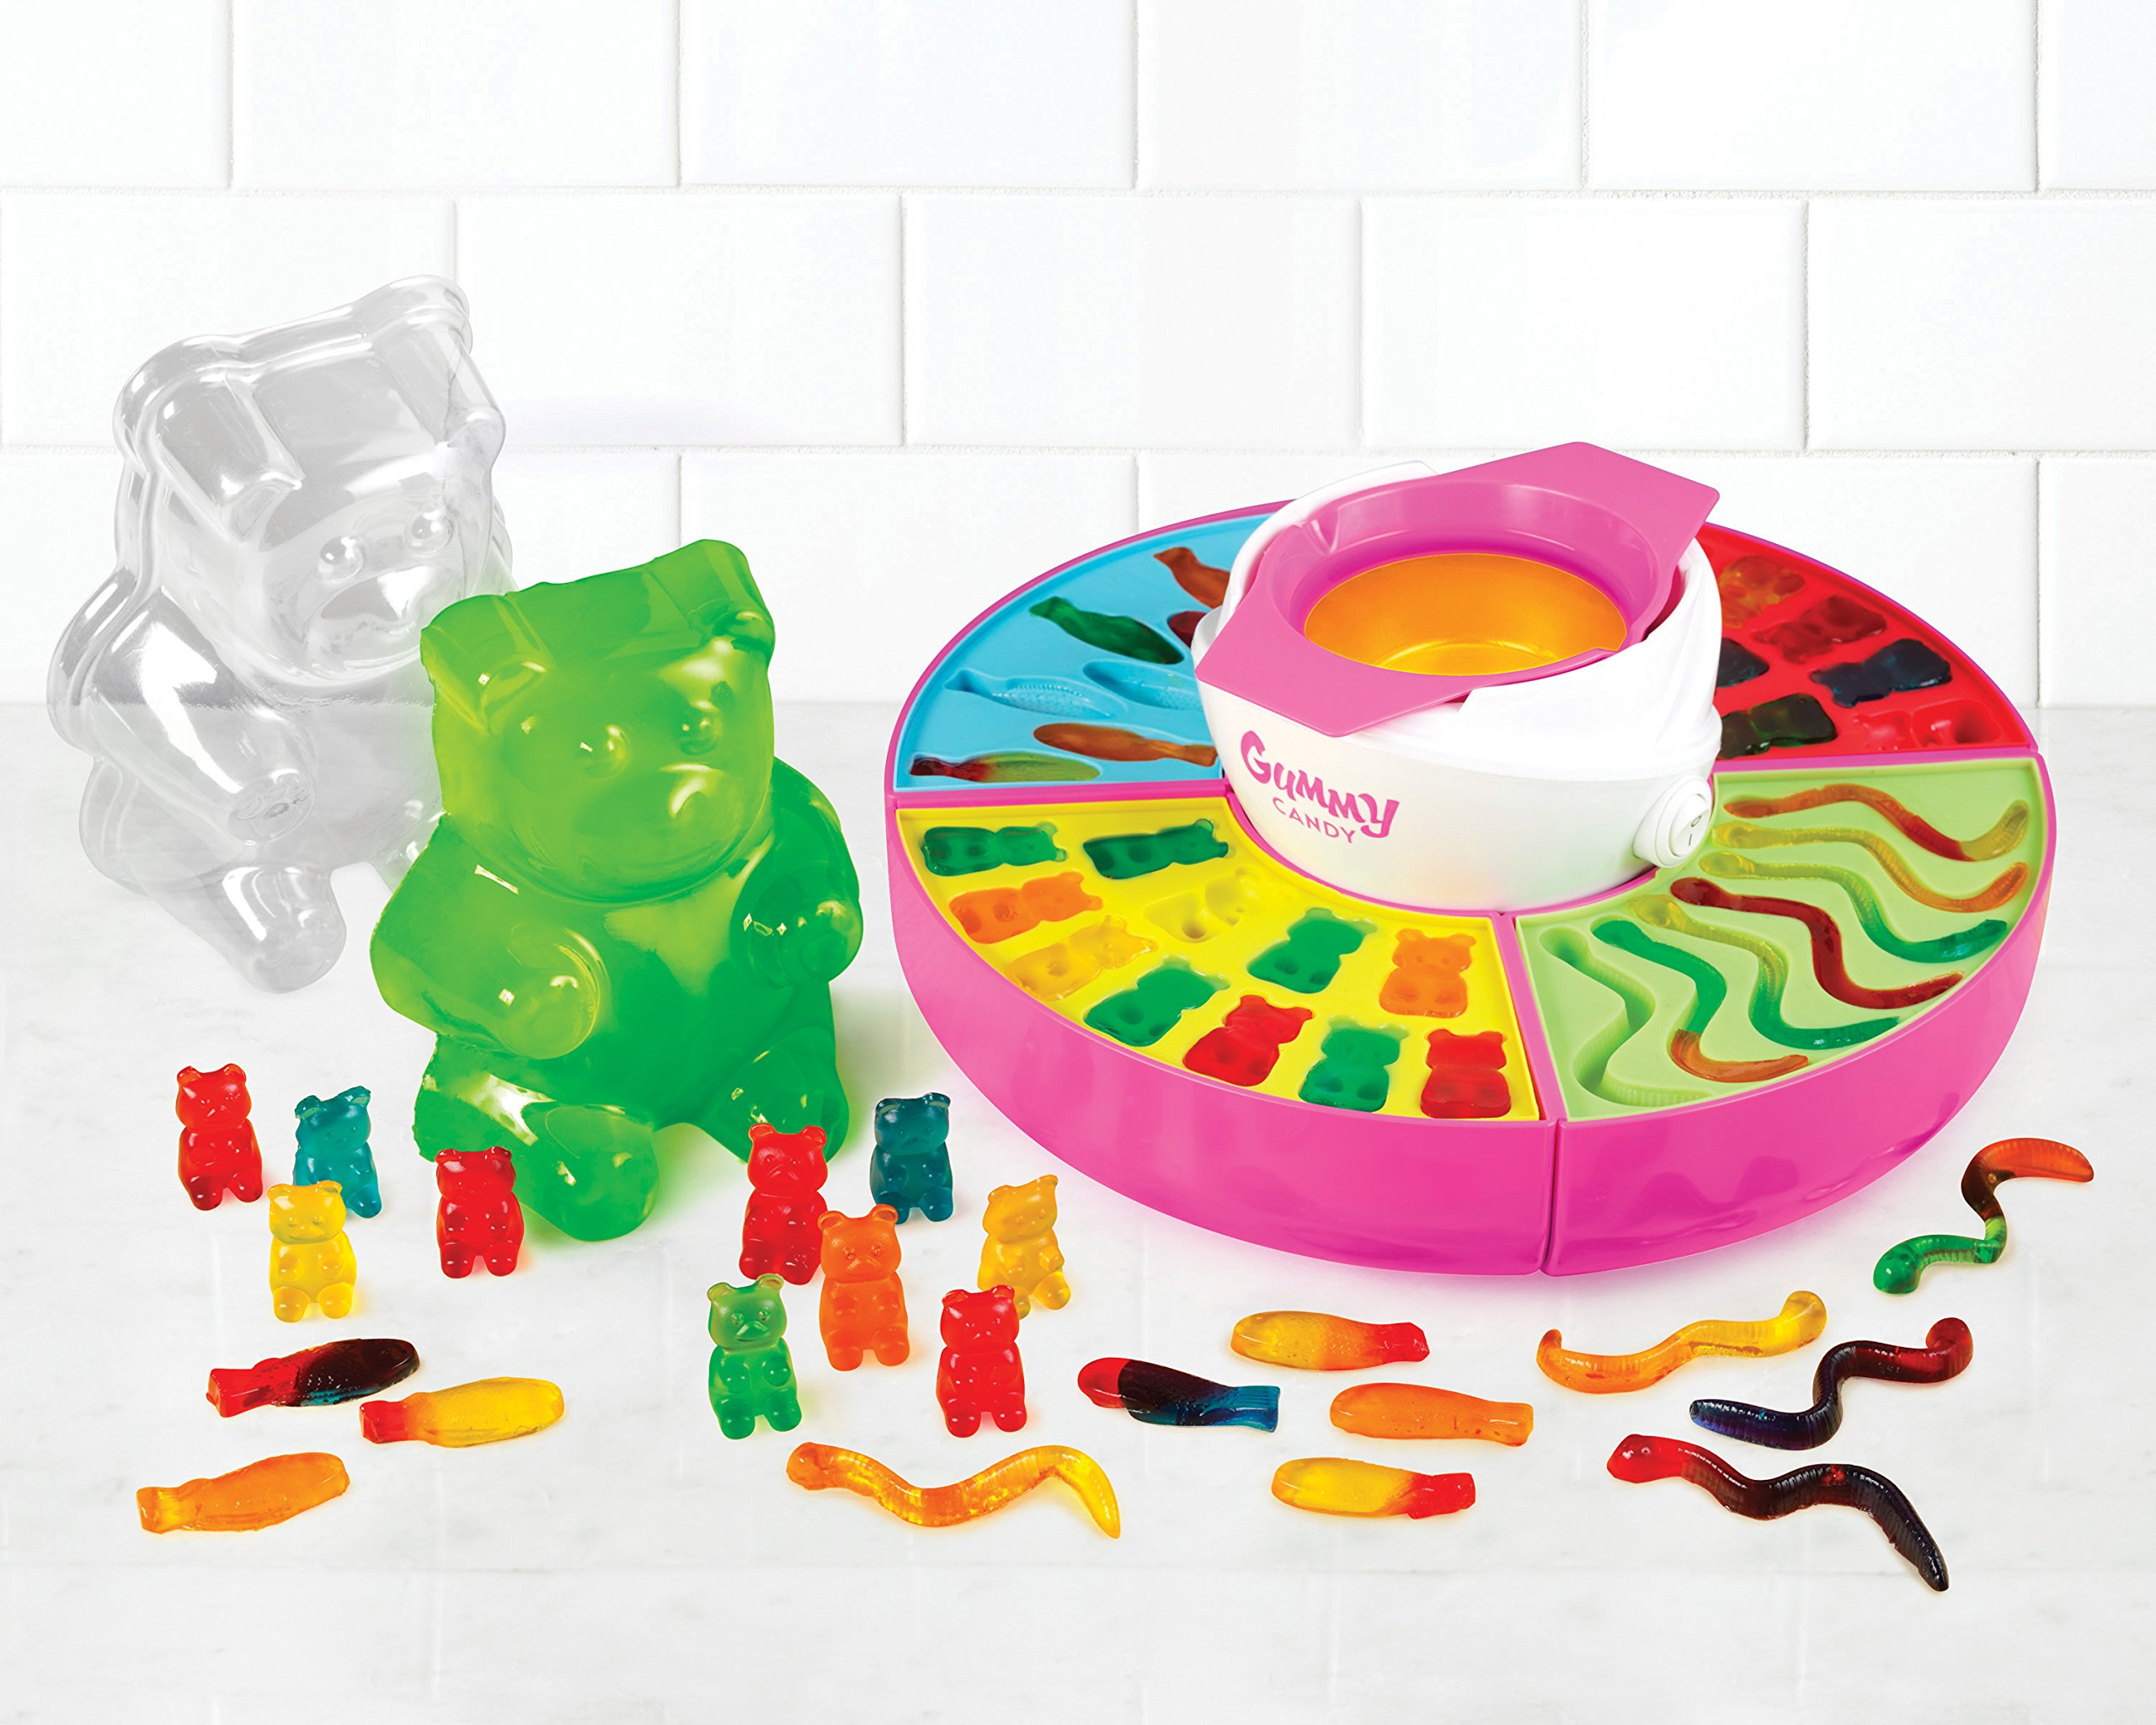 Nostalgia GCM600 Electric Giant Gummy Bear, Fish and Worm Maker Try with your own CBD Oil, Pink by Nostalgia (Image #2)